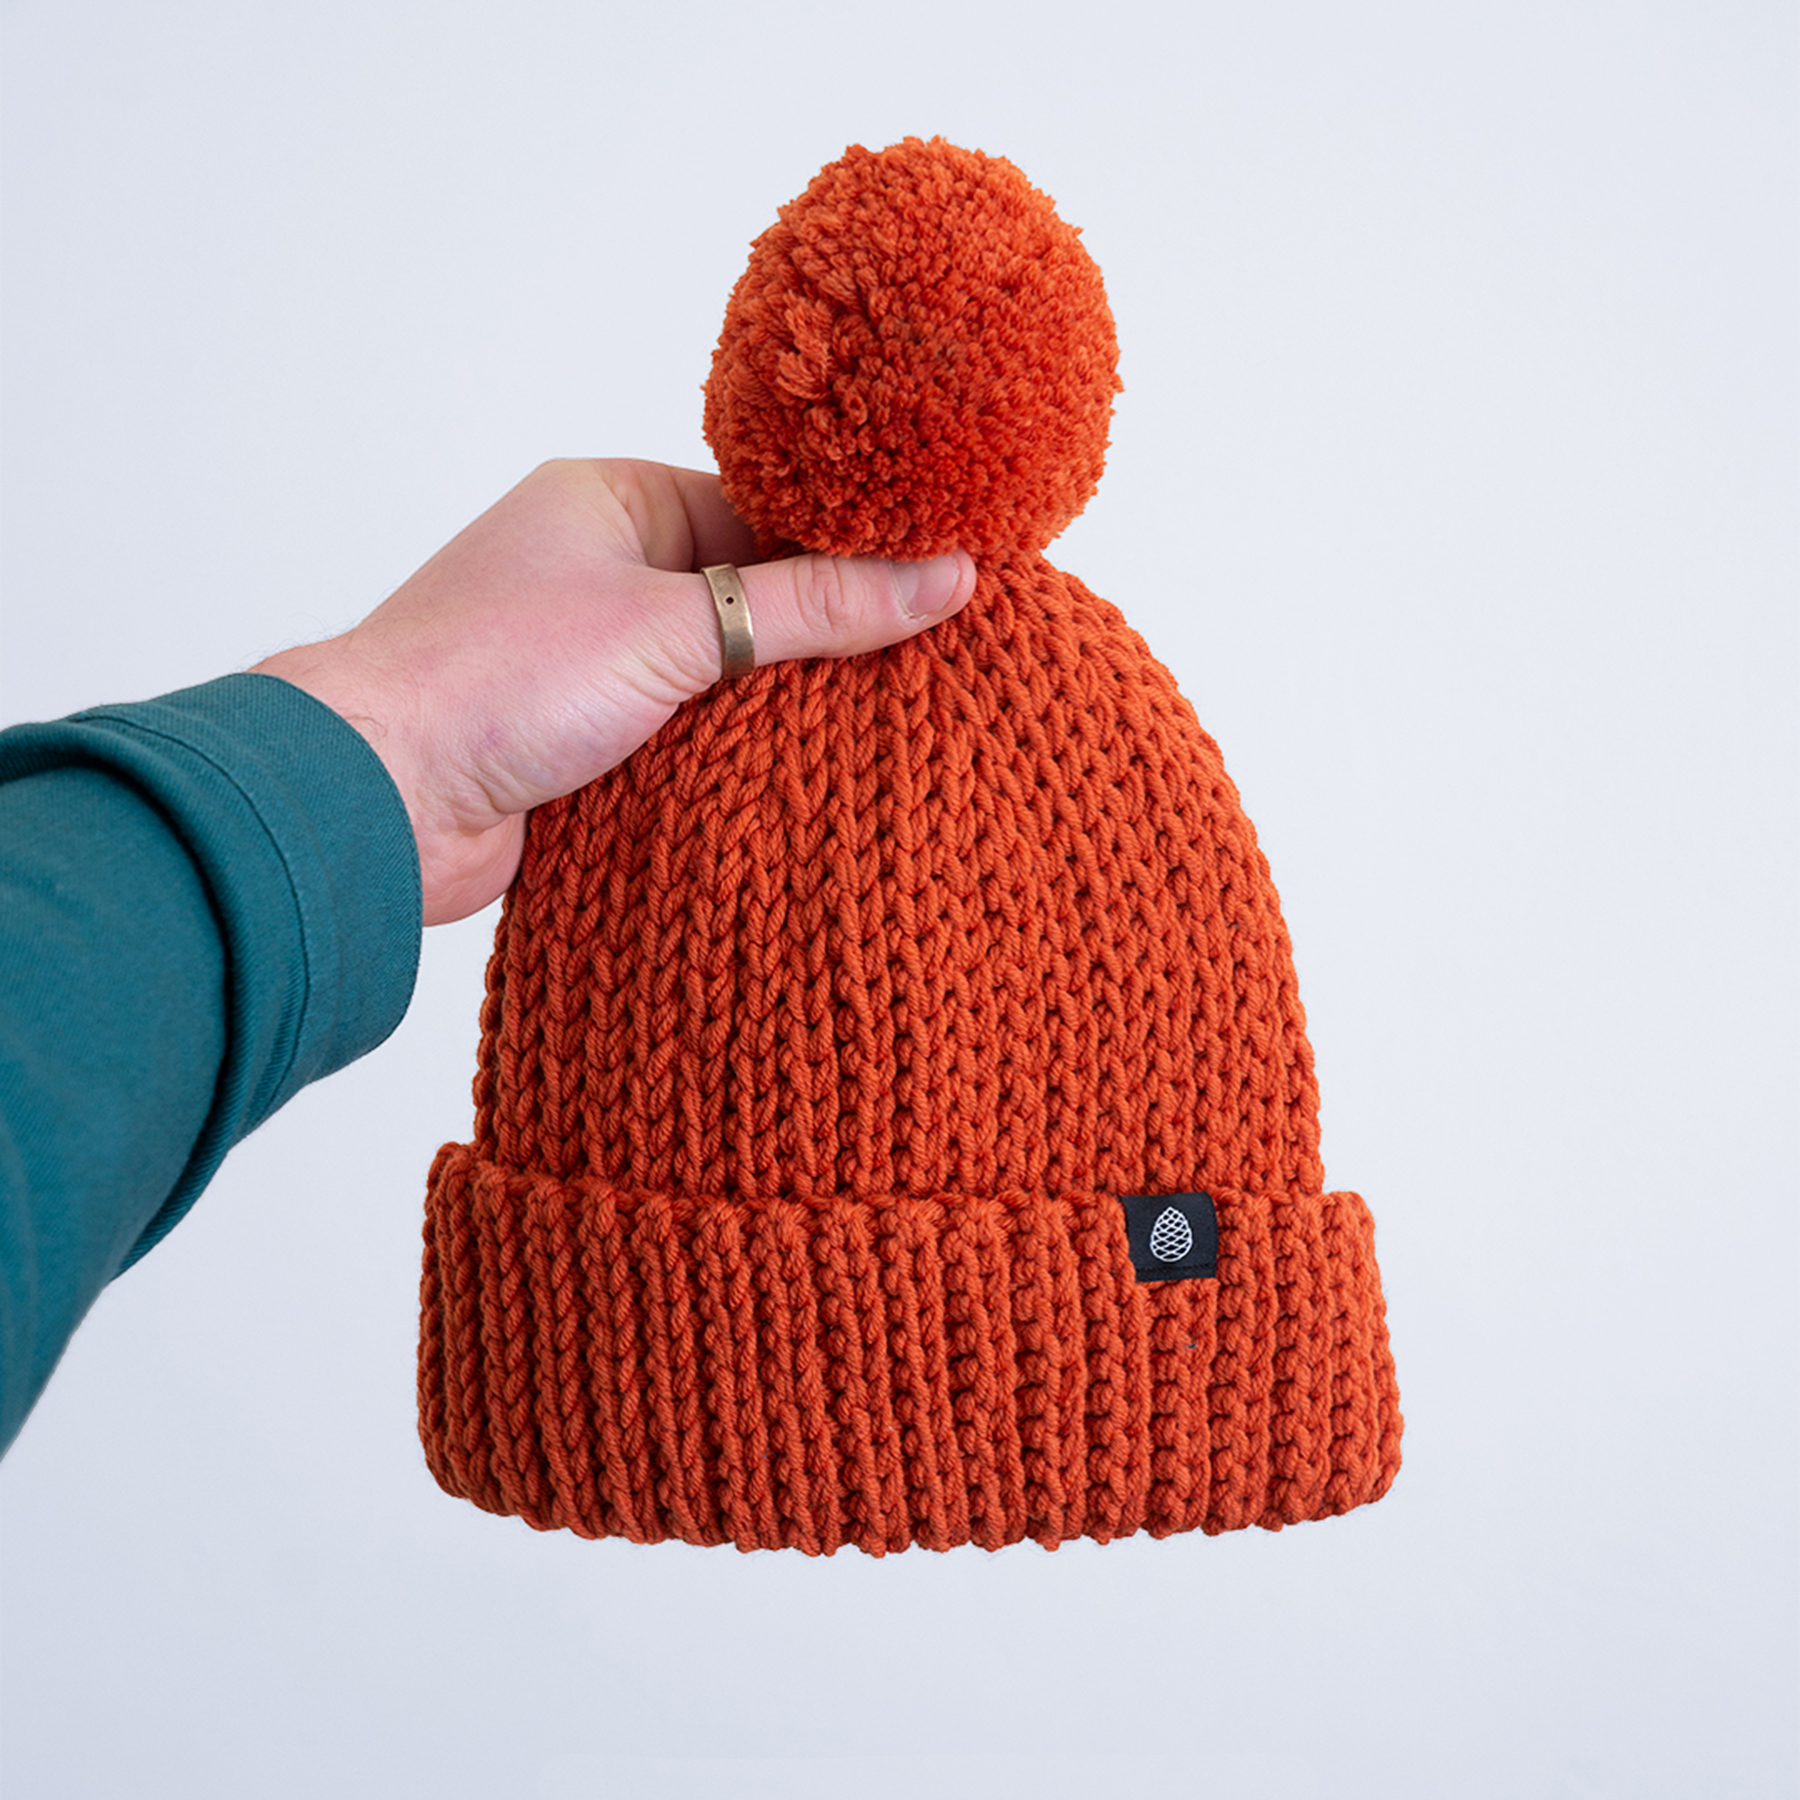 Our  Big Bob beanies  – hand knitted in Romania in collaboration with Dece